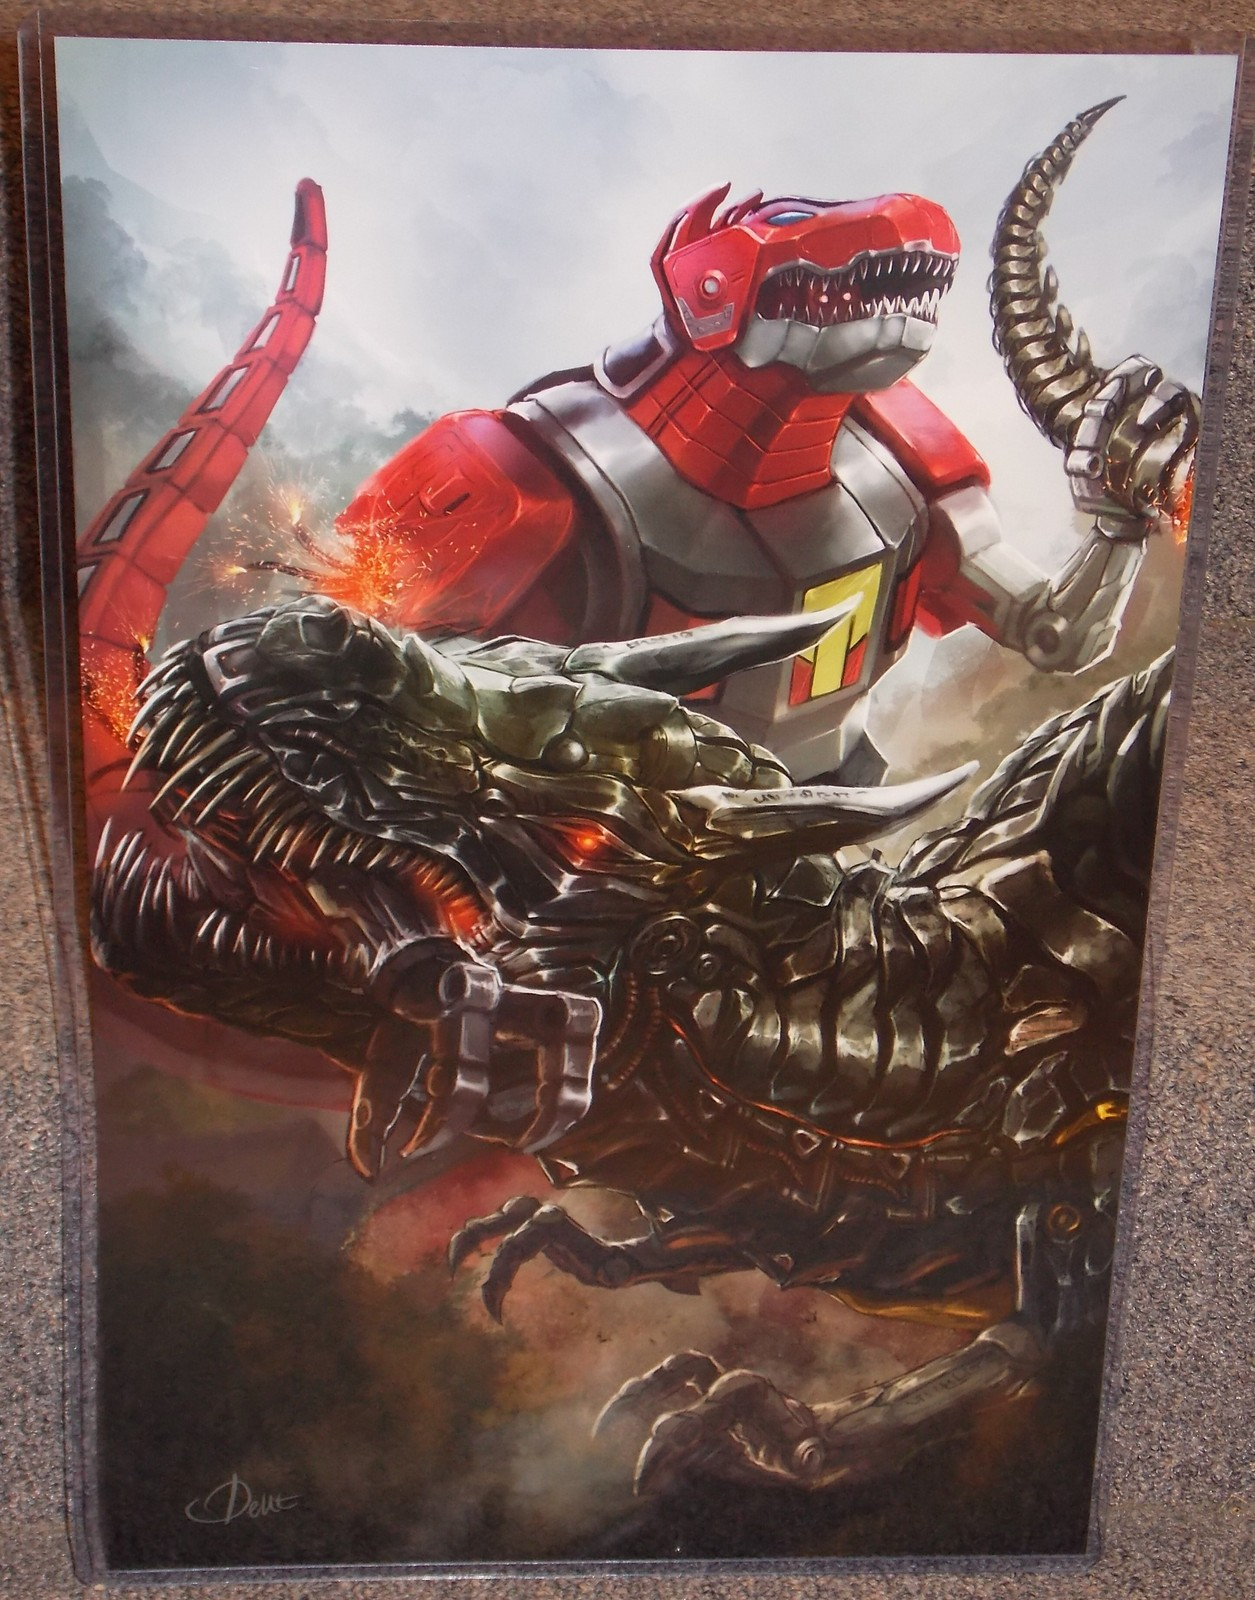 Primary image for Power Rangers Dinozord vs Transformers Grimlock Glossy Print 11 x 17 In Sleeve